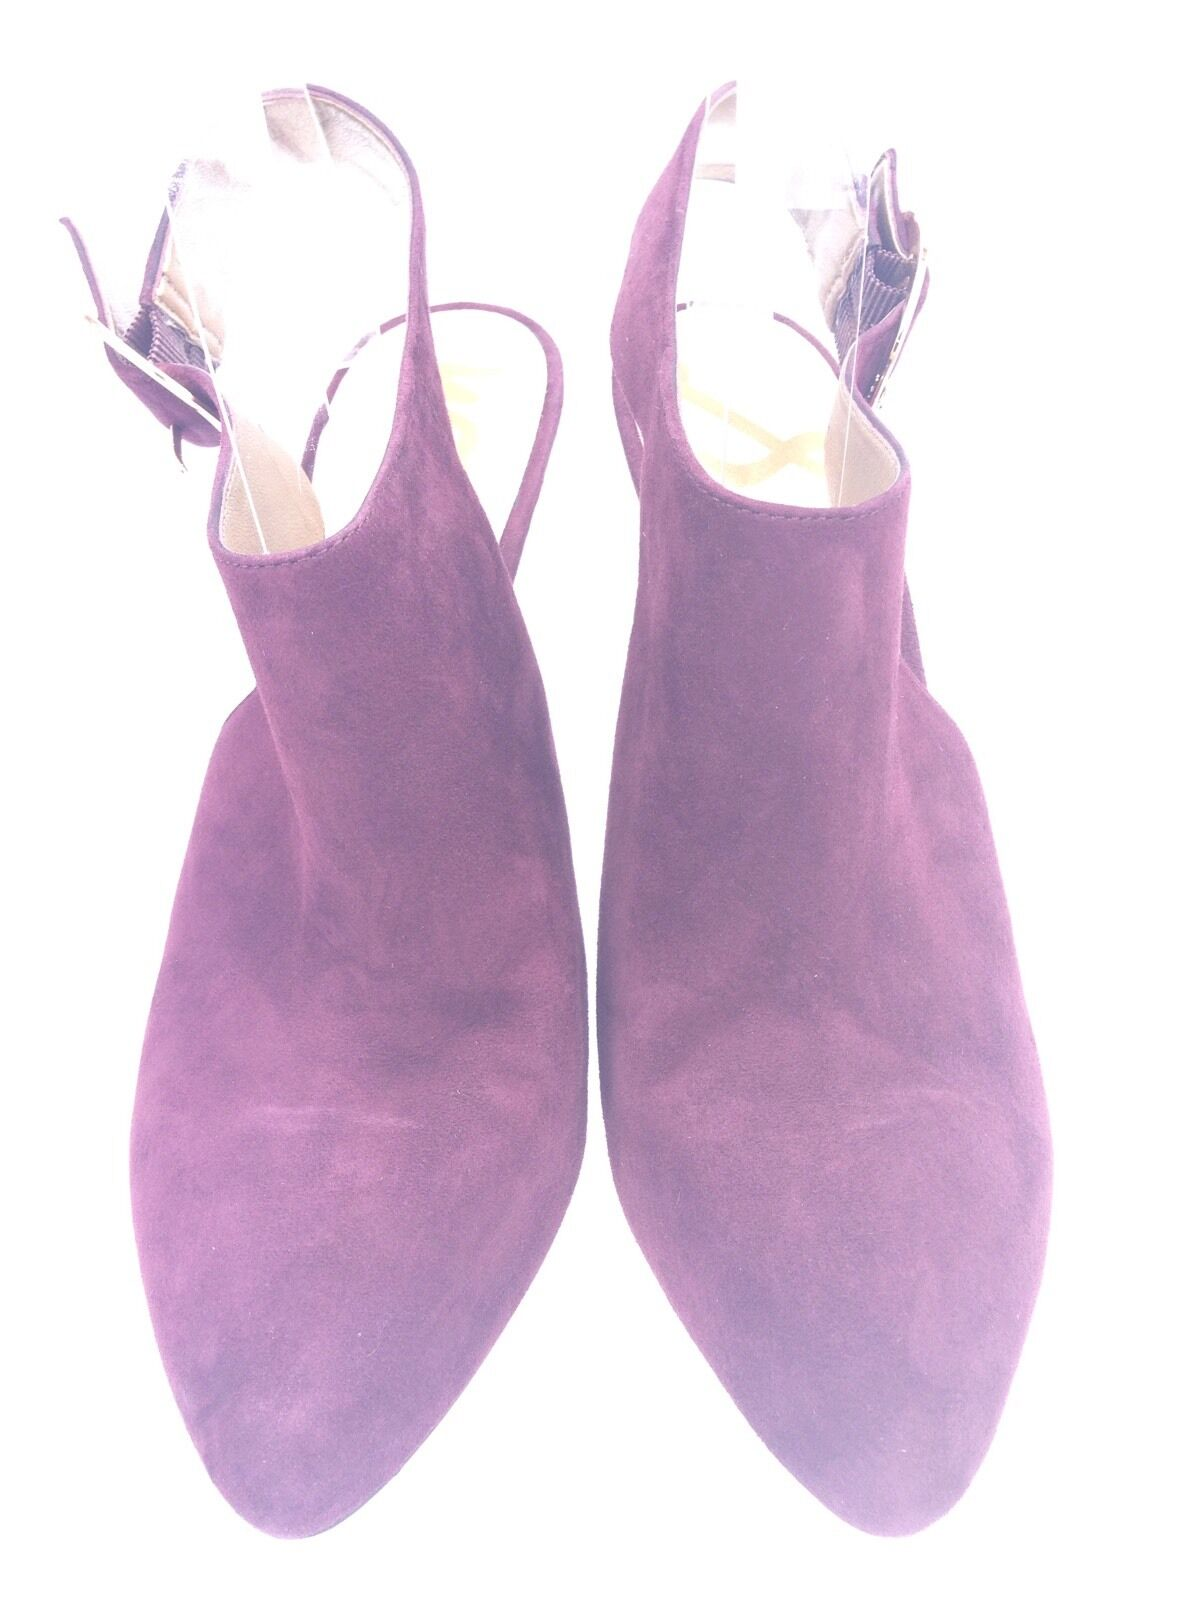 Women's Sam Edelman Julian Purple Purple Purple Suede Heels SZ 9 M Pumps 2db24f